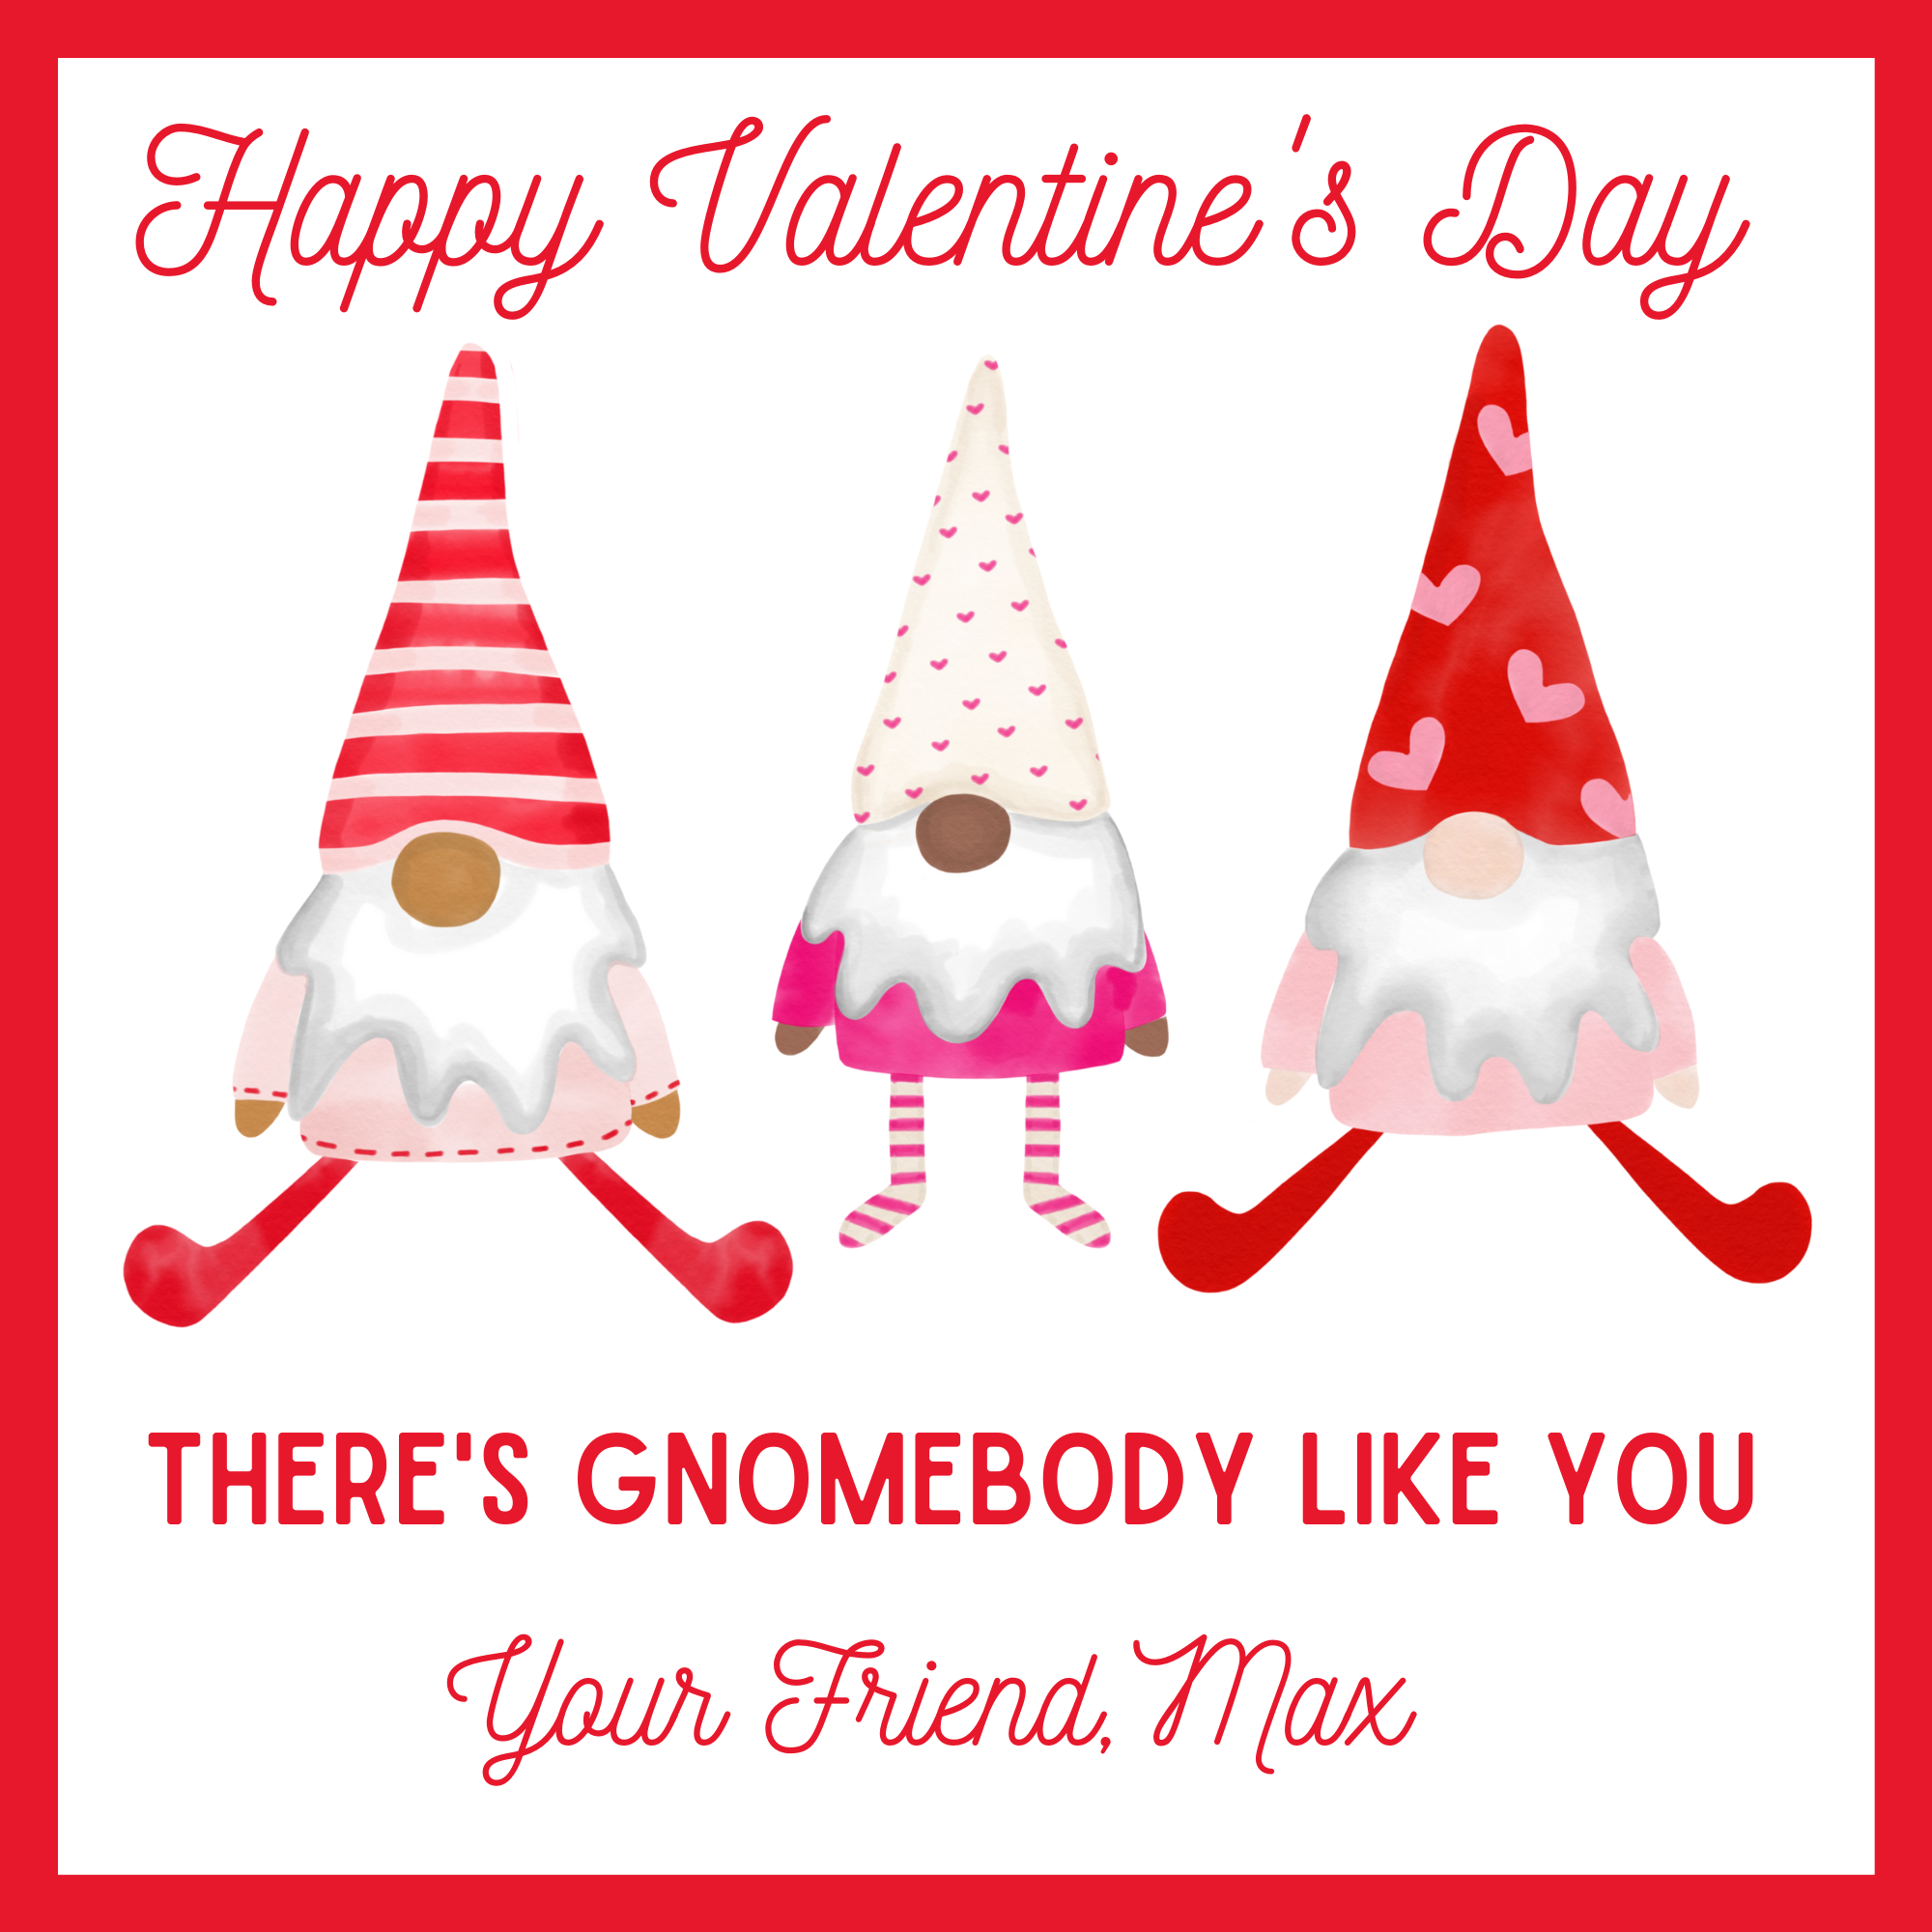 Digital Download - Valentine's Day Sticker or Gift Tag - 3x3 - Gnomebody Like You